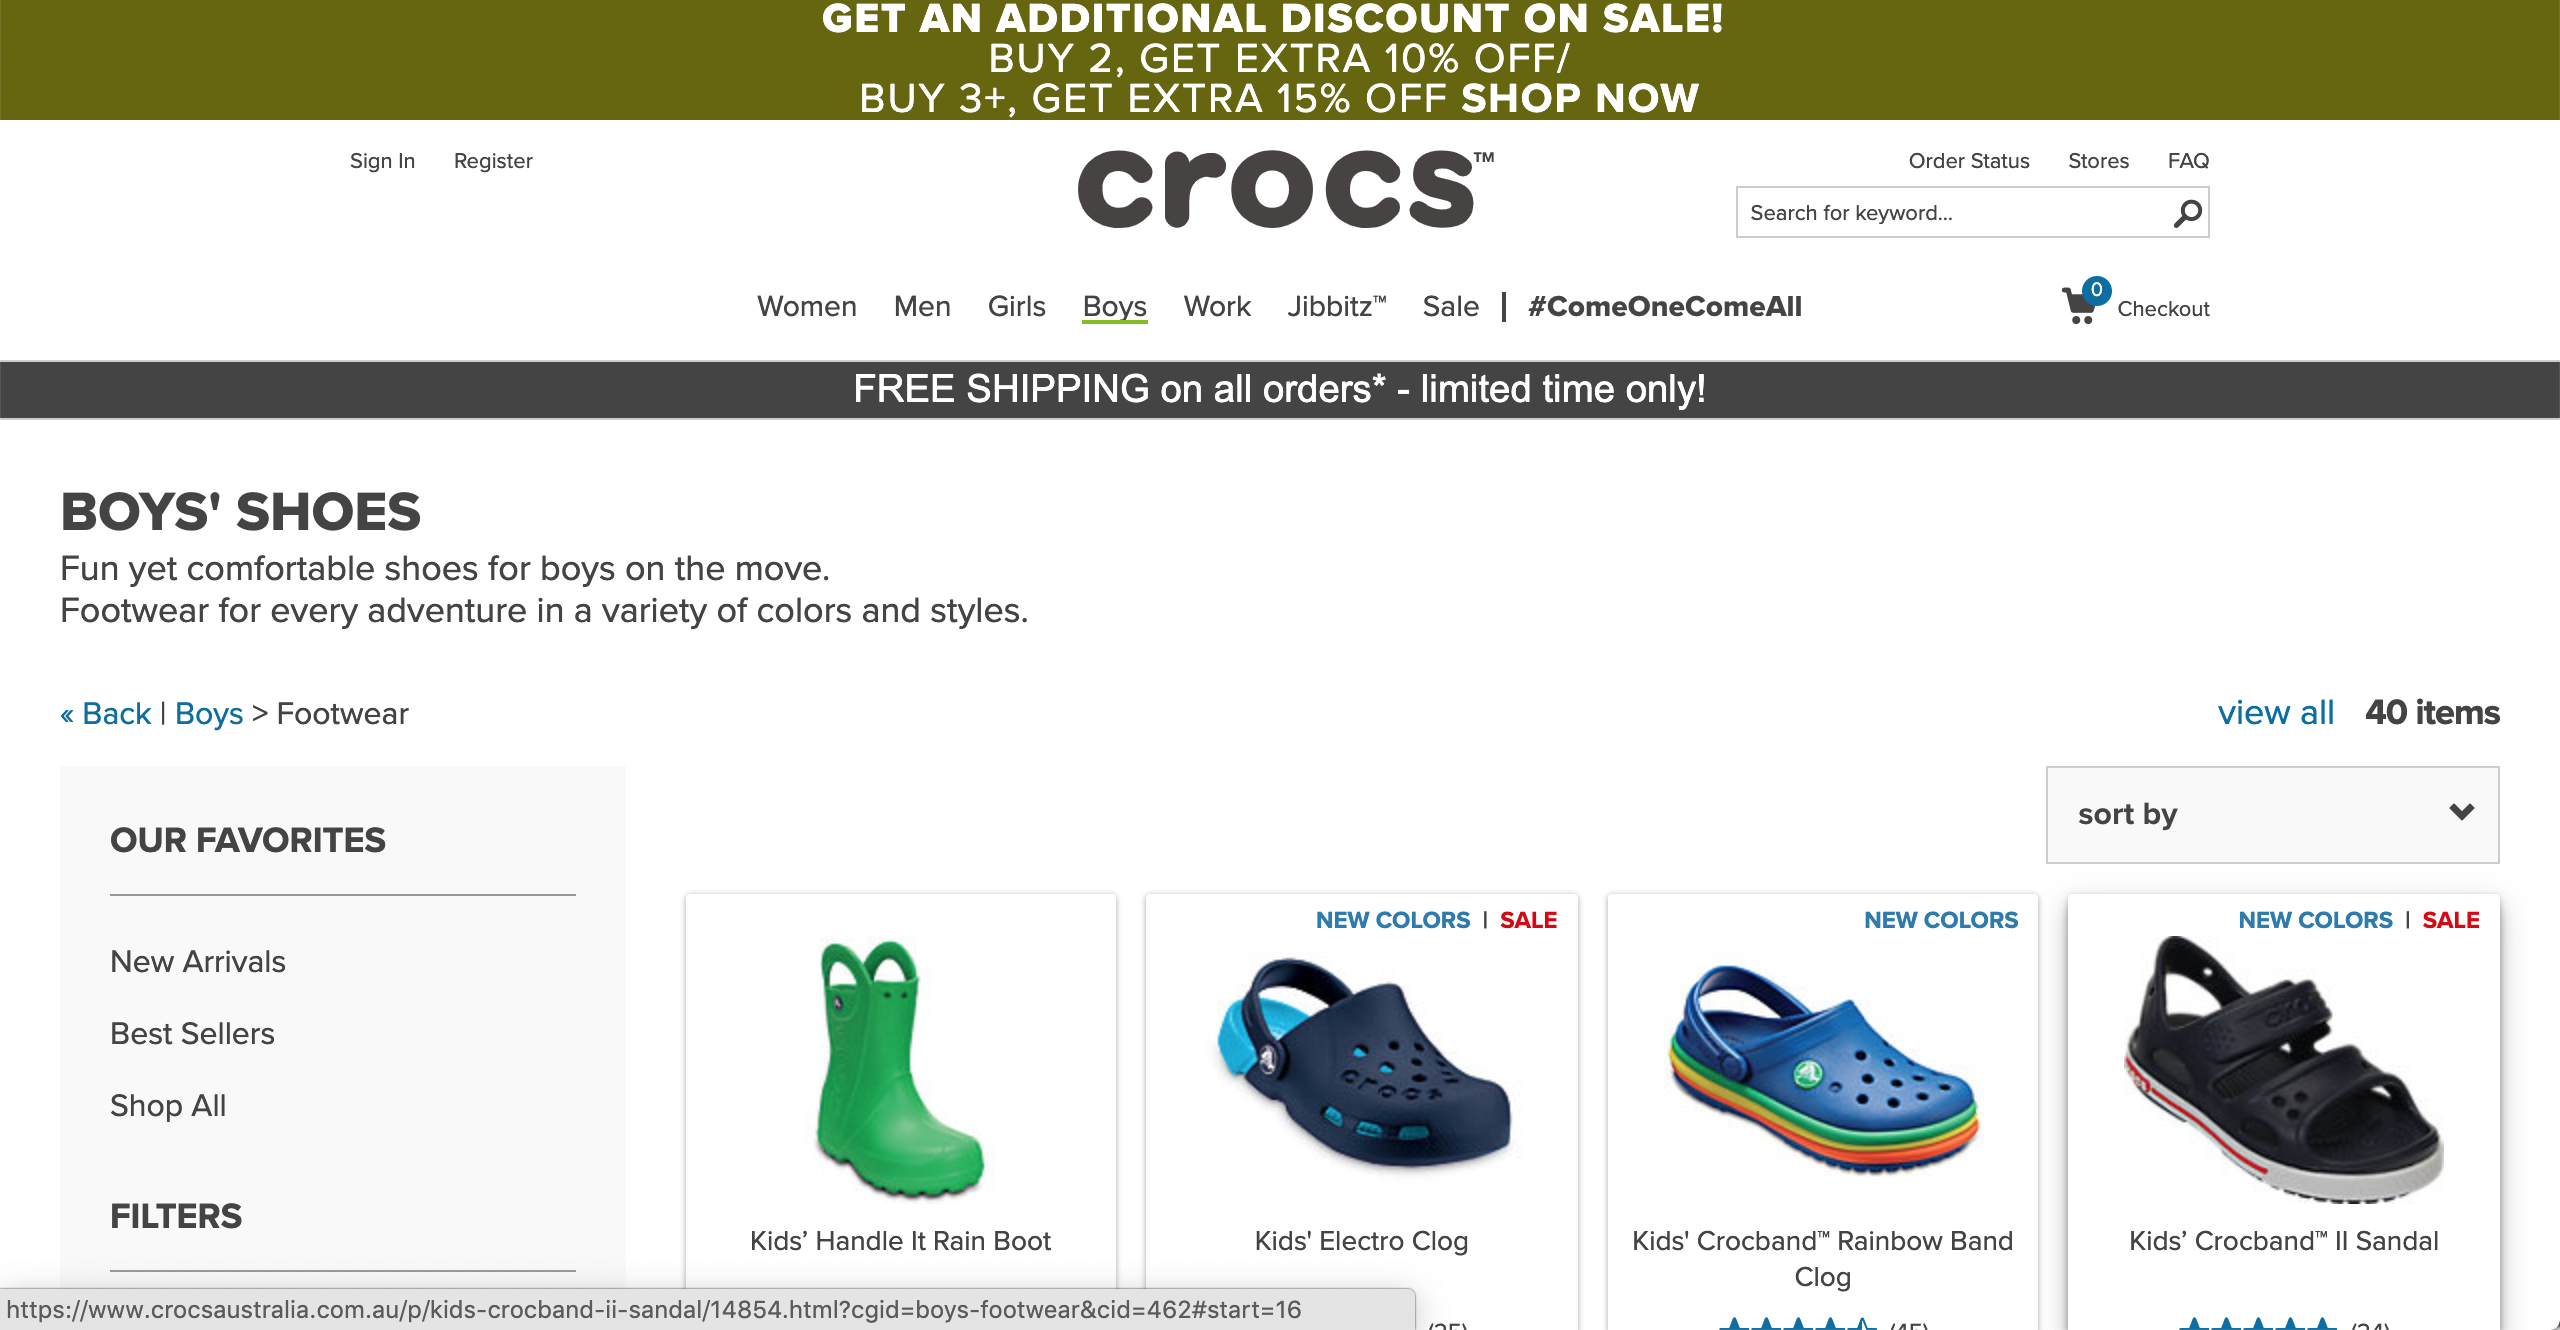 Crocs Boy's products page